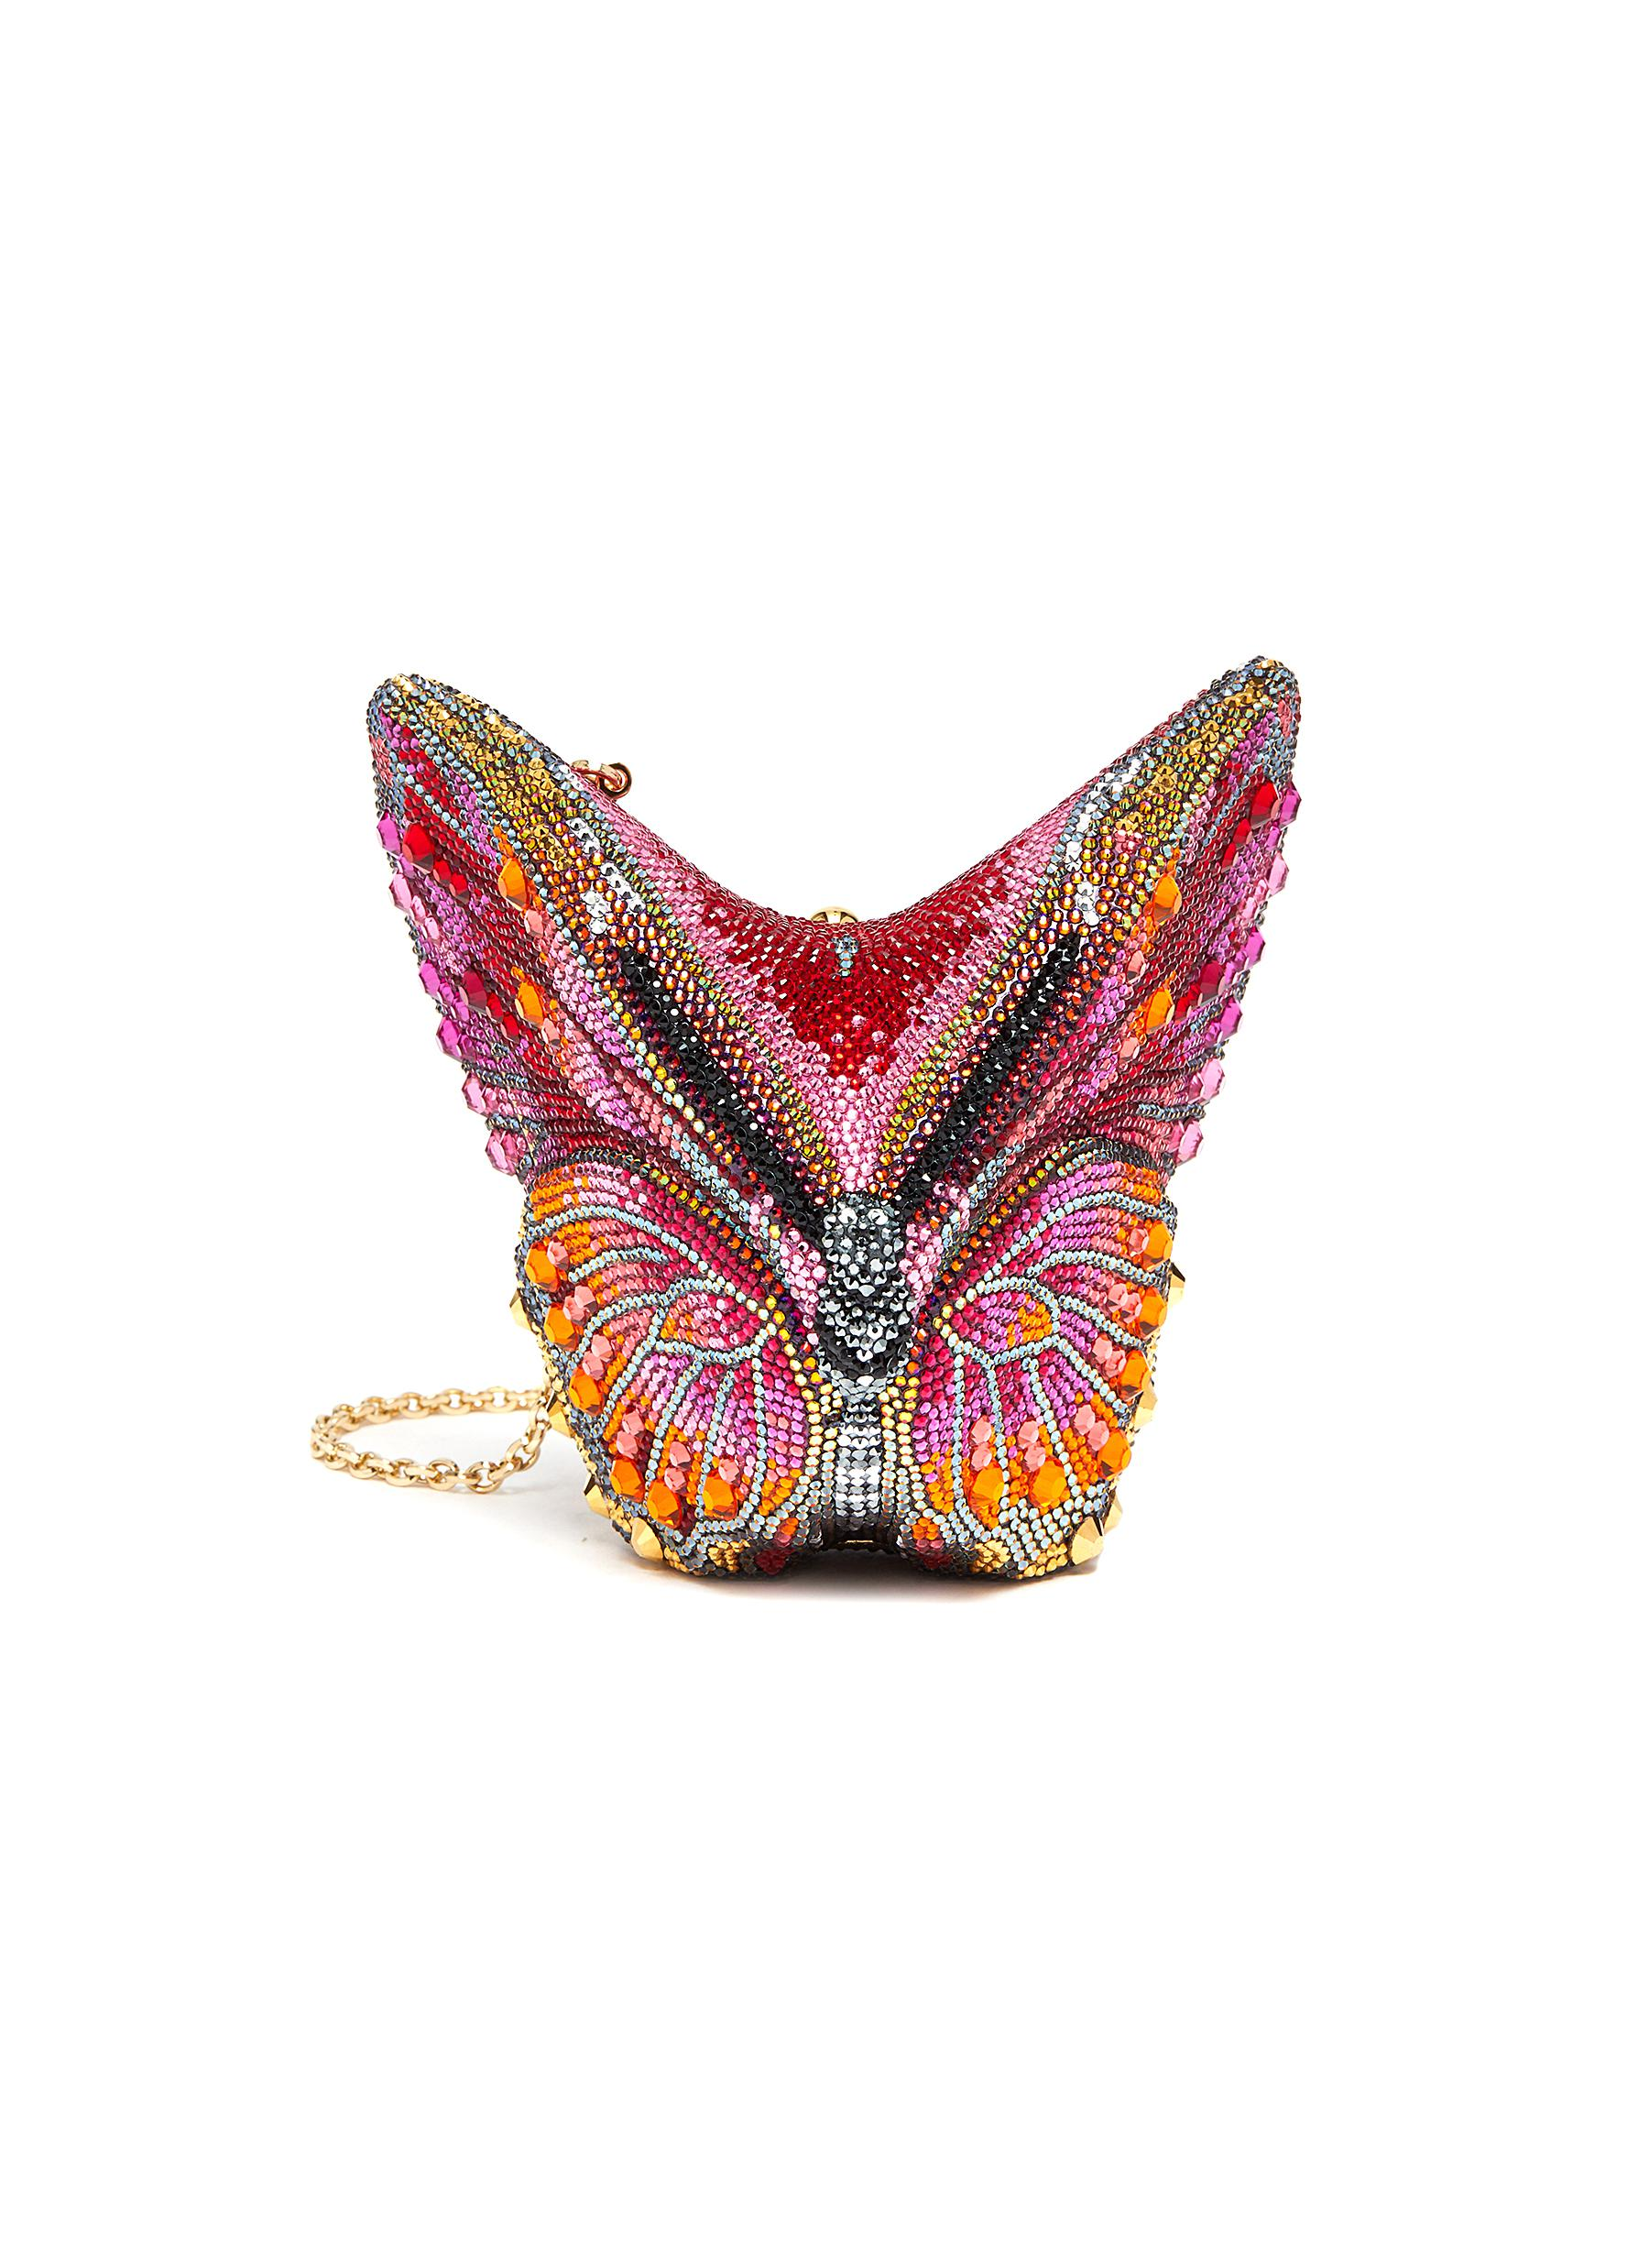 'Butterfly Fireclipper' Crystal Embellished Clutch